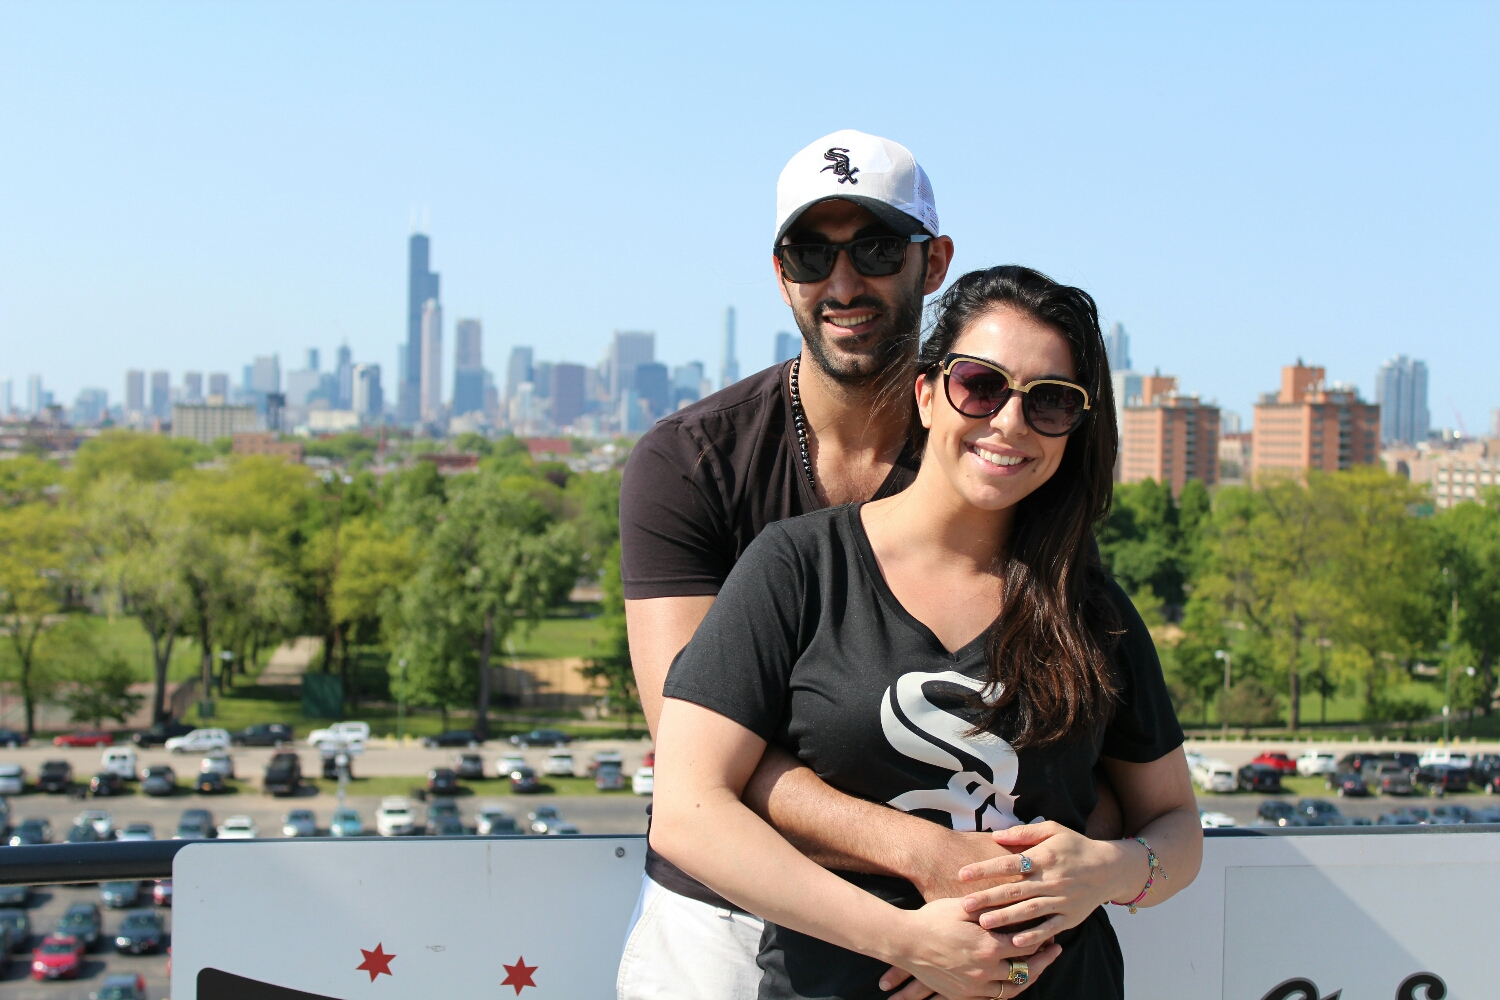 Great couple, great city